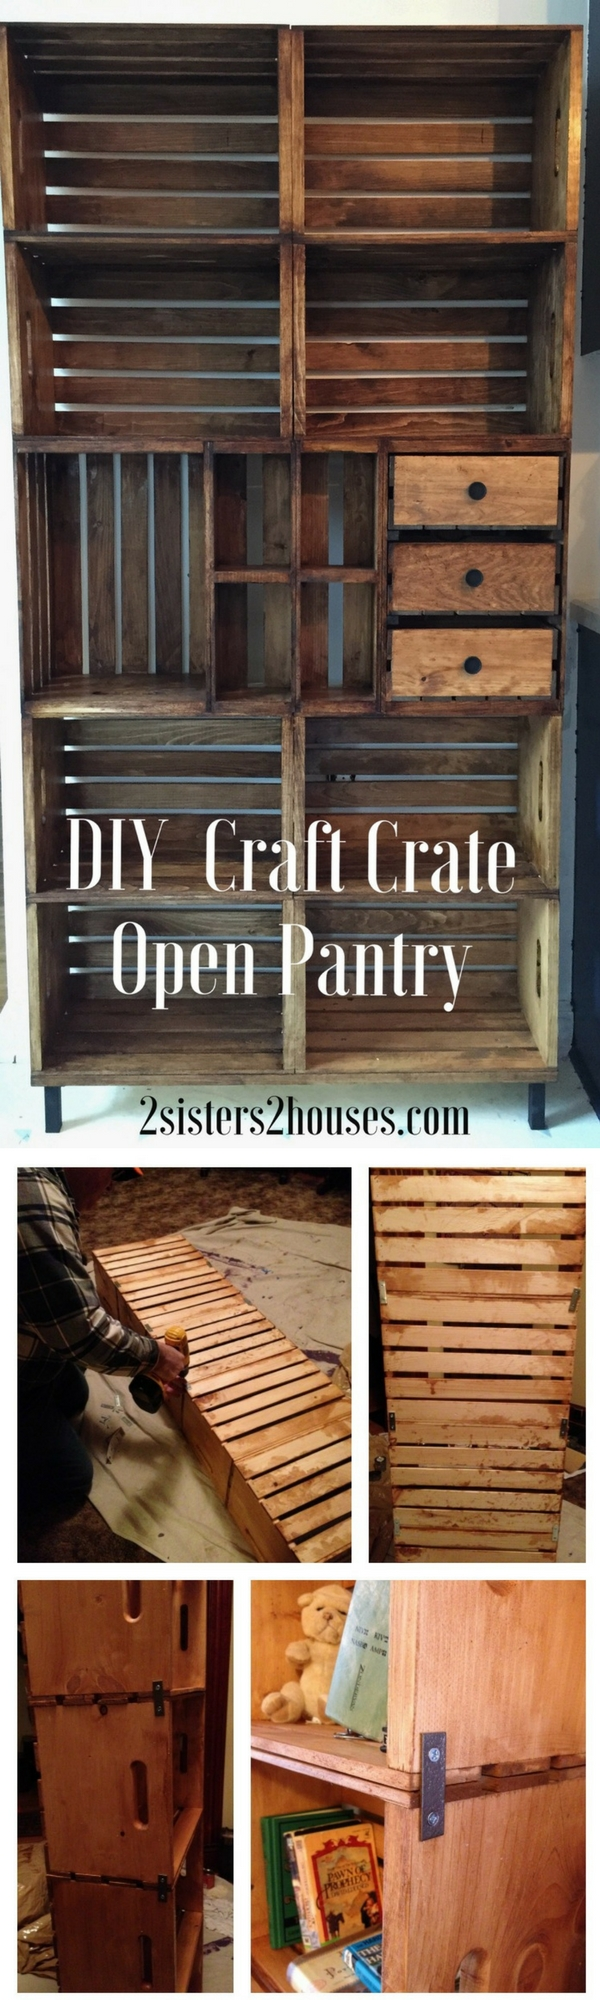 Check out how to build a DIY open pantry from crates